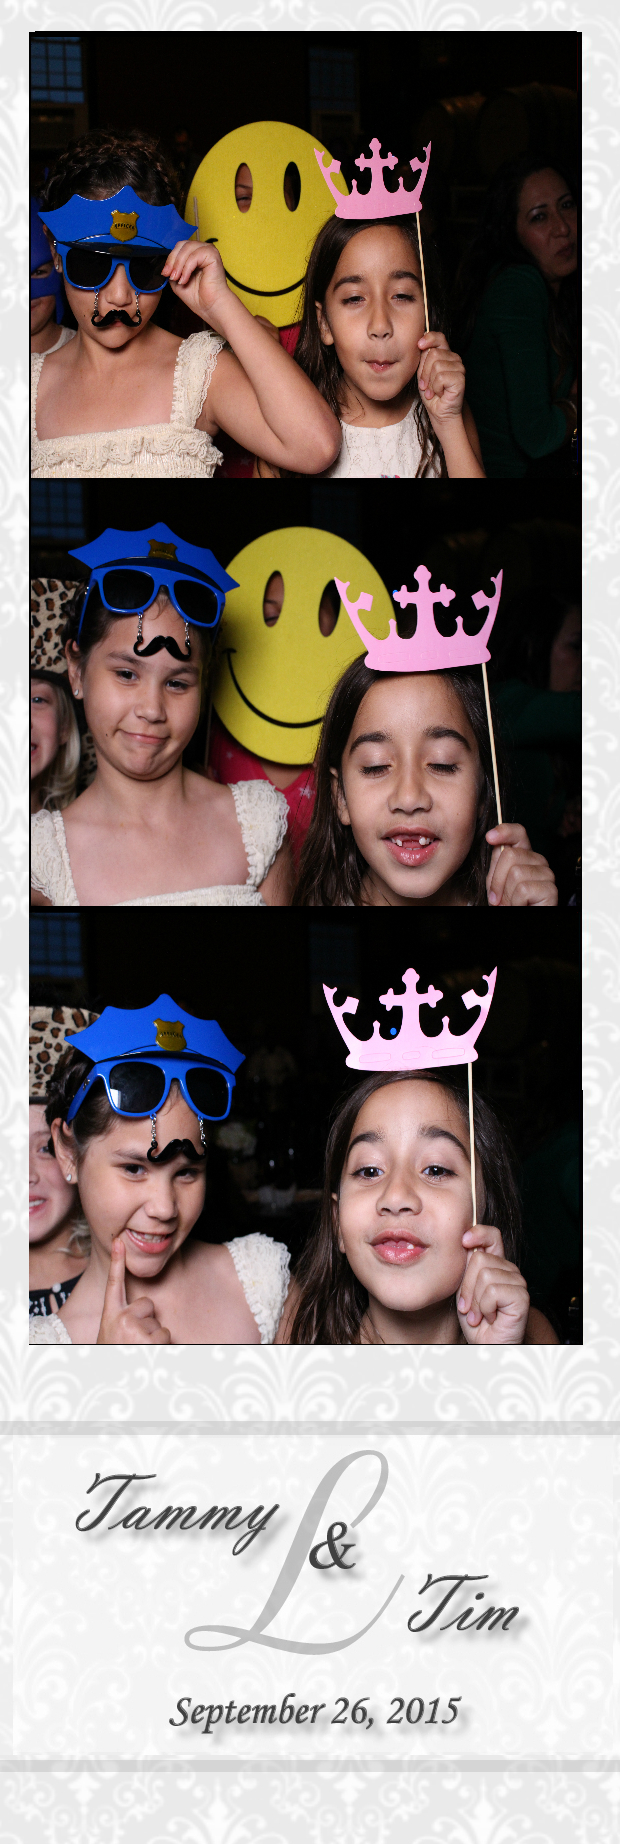 Guest House Events Photo Booth Strips T&T (1).jpg